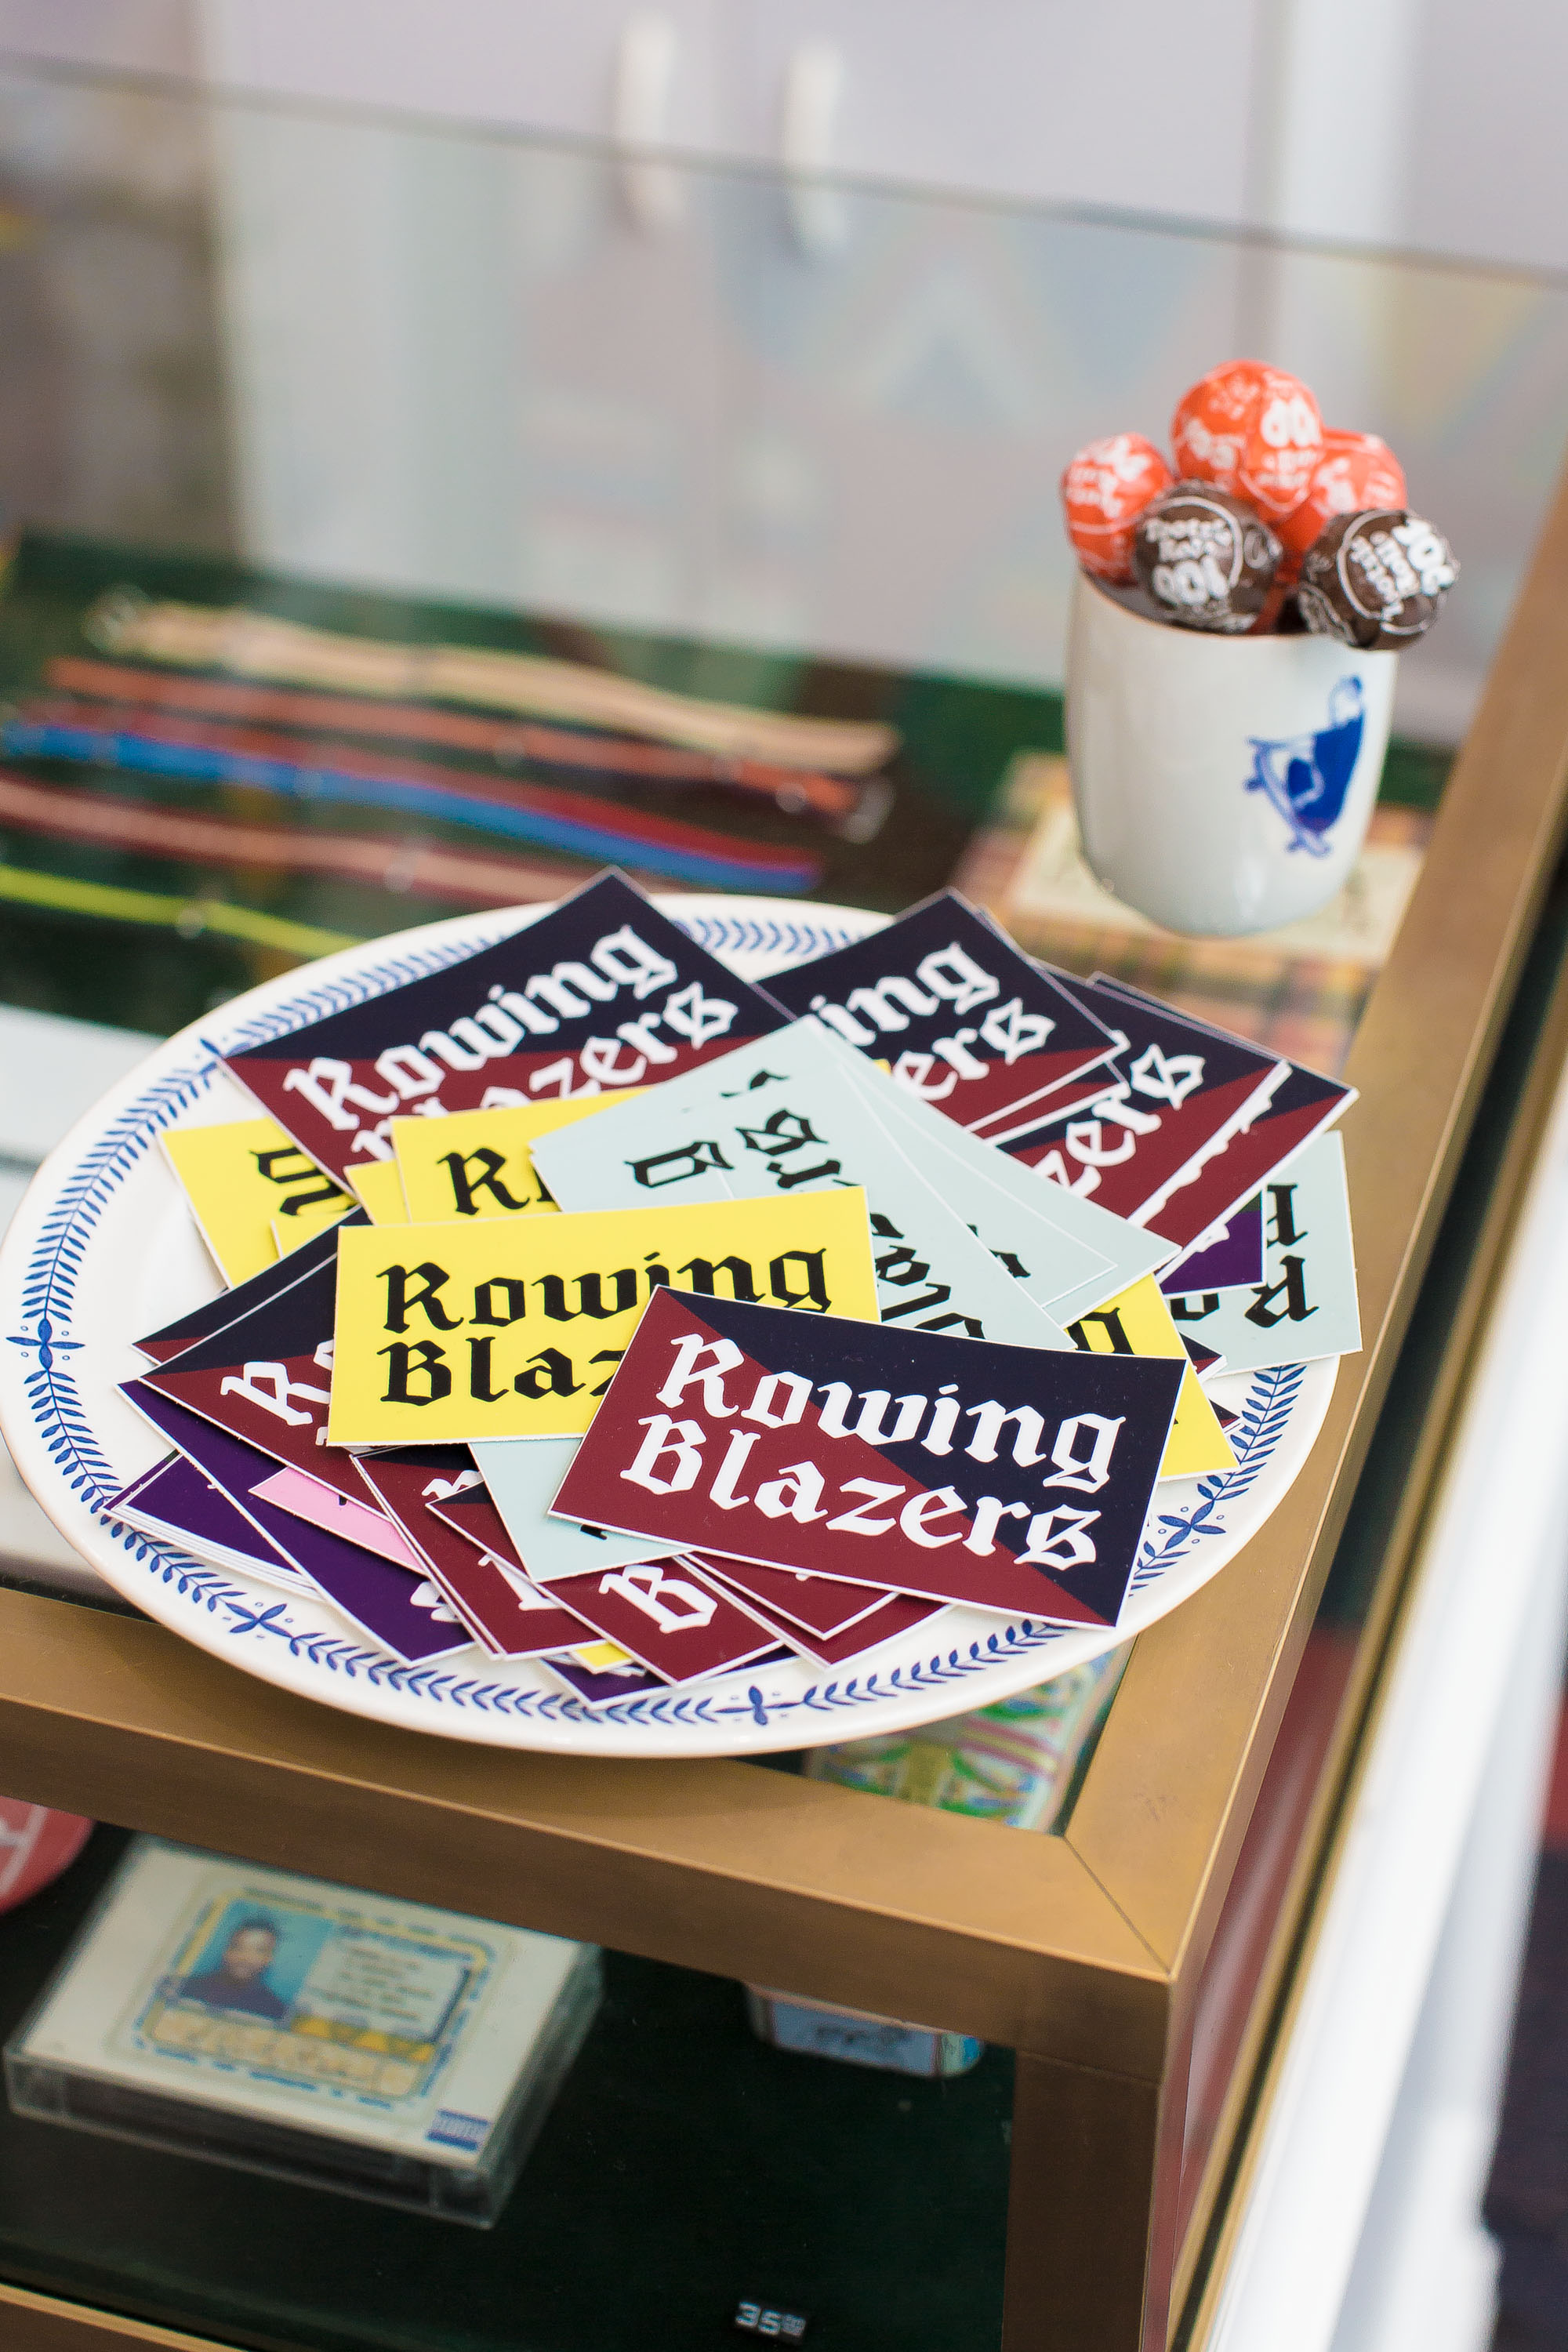 Rowing Blazers stickers sit atop a counter top just over the Ol' Dirty Bastard cassette tape.